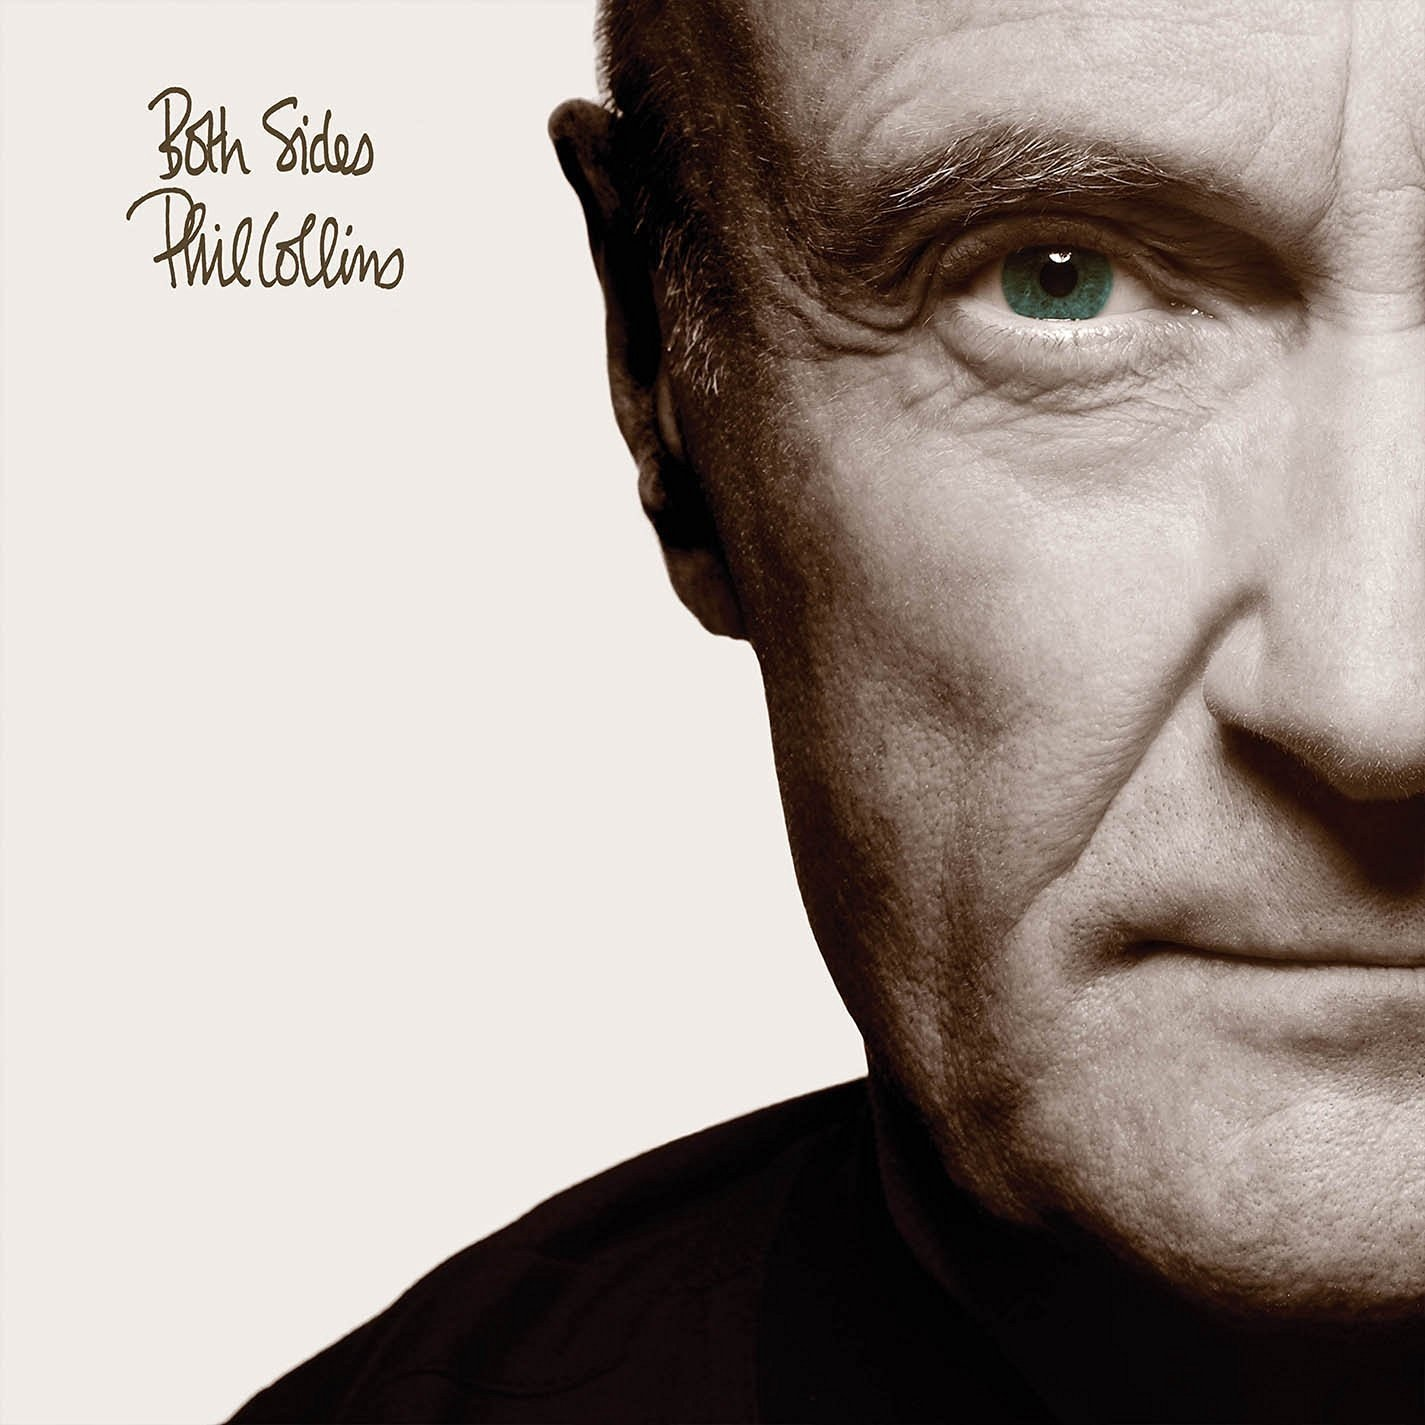 Phil Collins. Both Sides. Remastered (2 LP) фил коллинз phil collins testify 2 lp